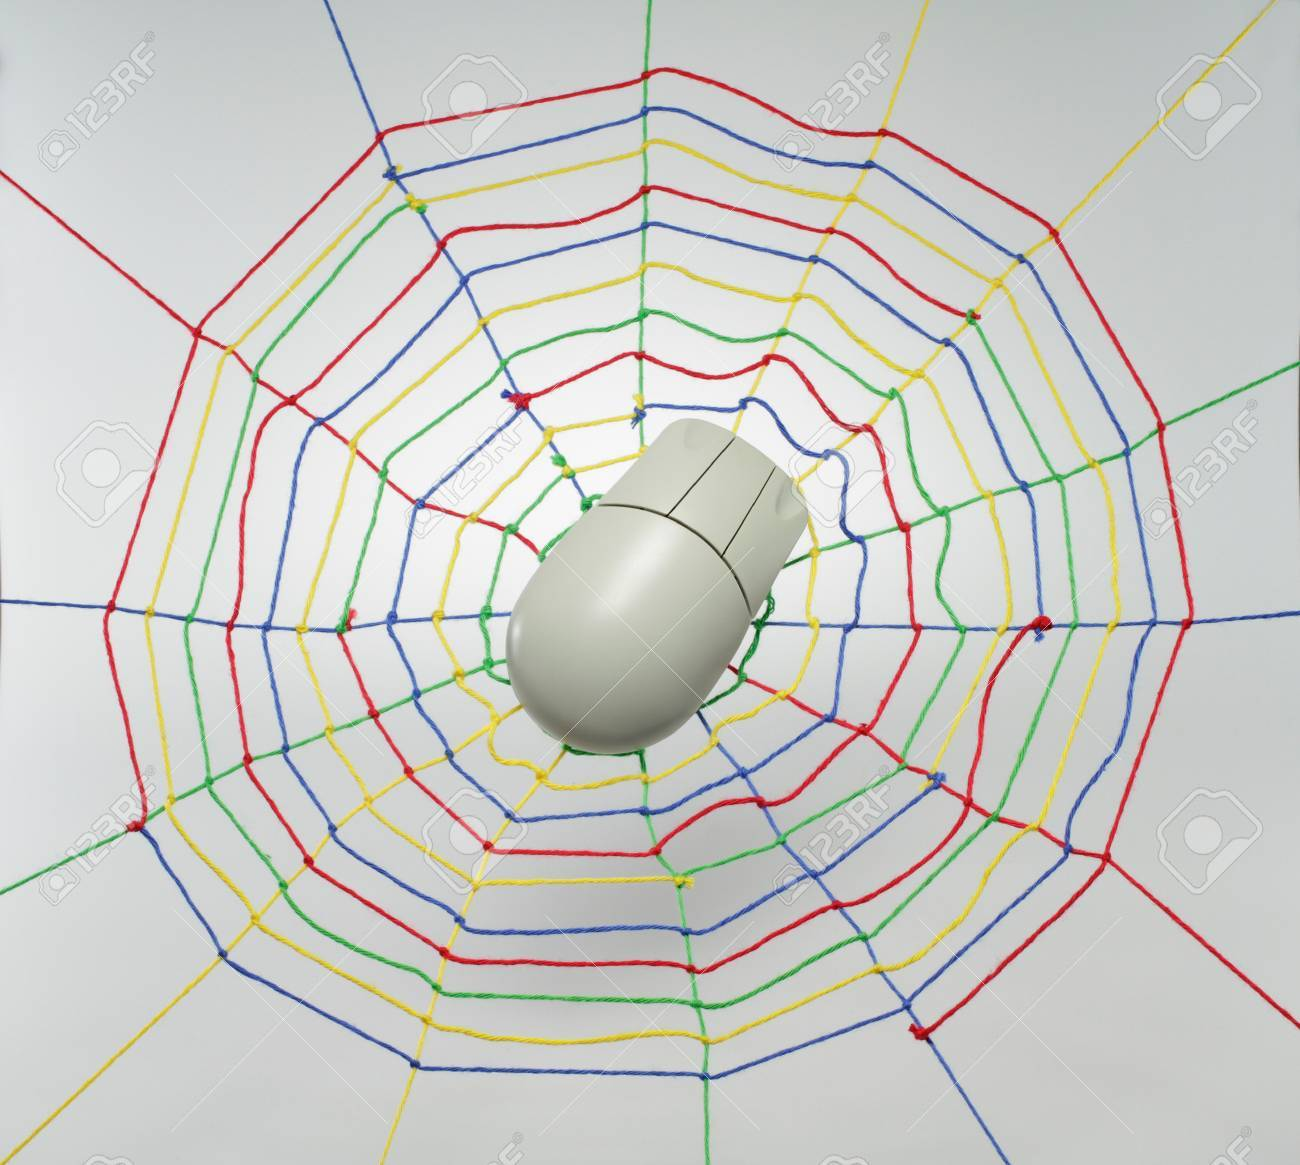 Colorful ribbons create a spider web many links and cross each other. Stock Photo - 9089261